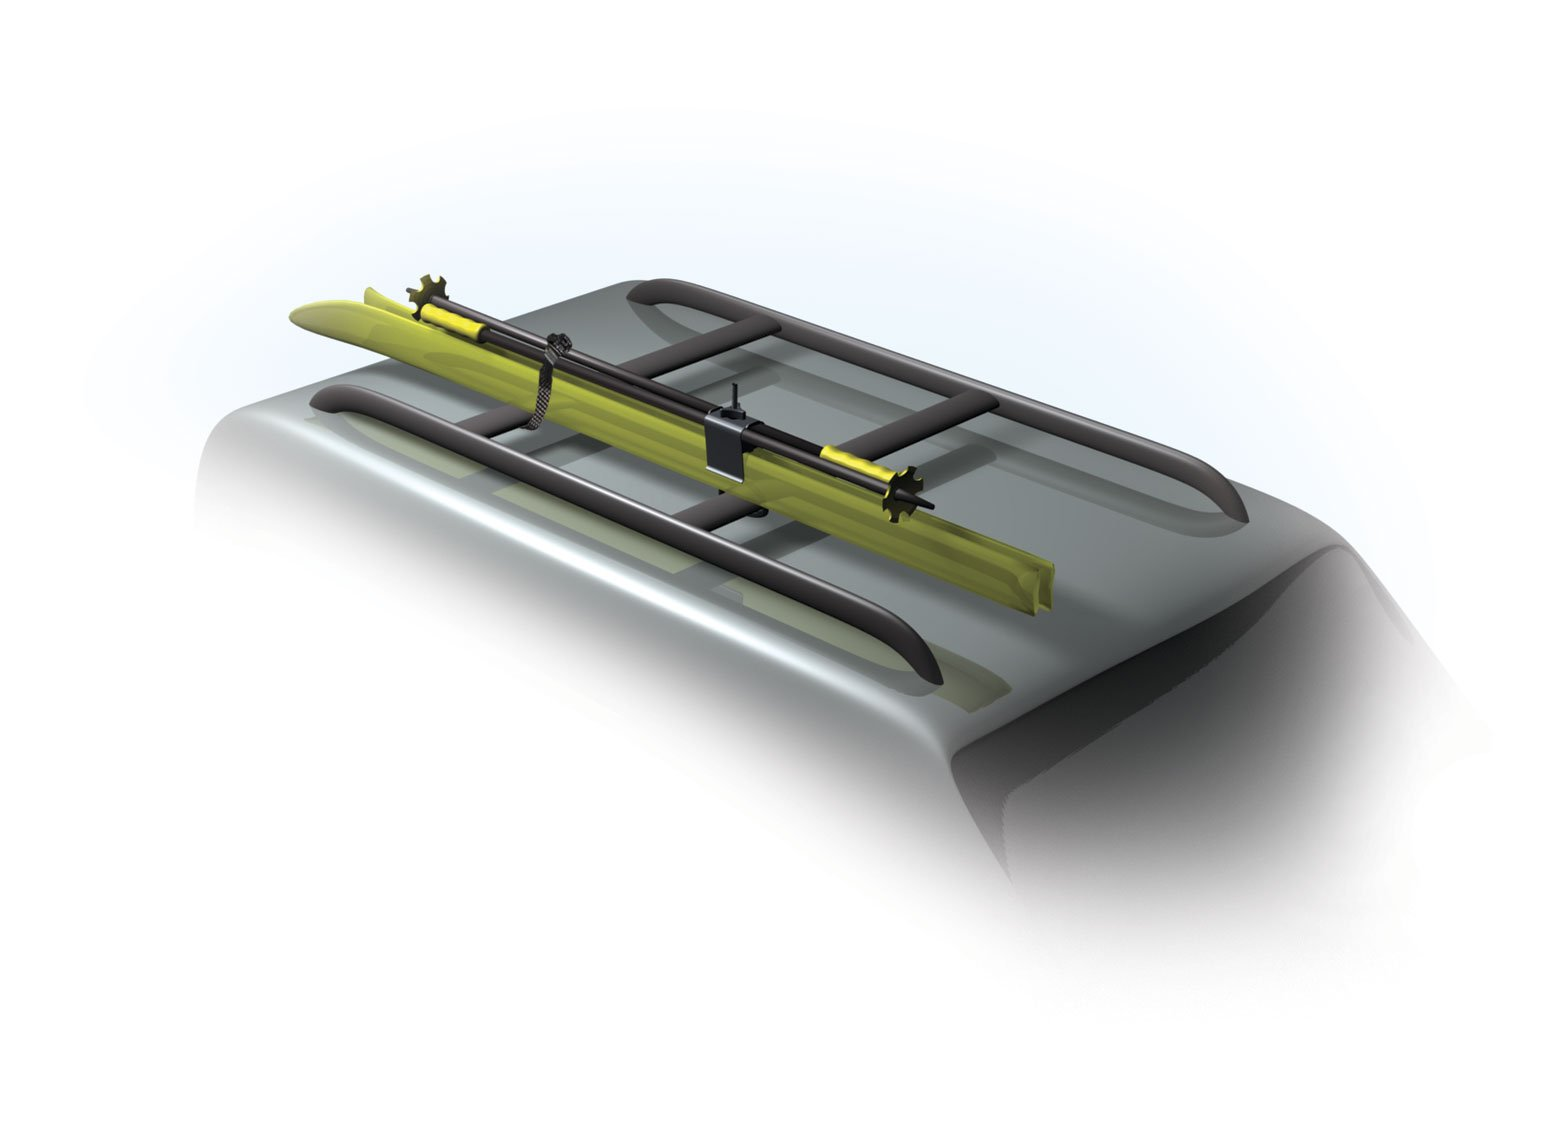 Structured Solutions Raxstars Compact Universal Ski Carrier by Structured Solutions LLC